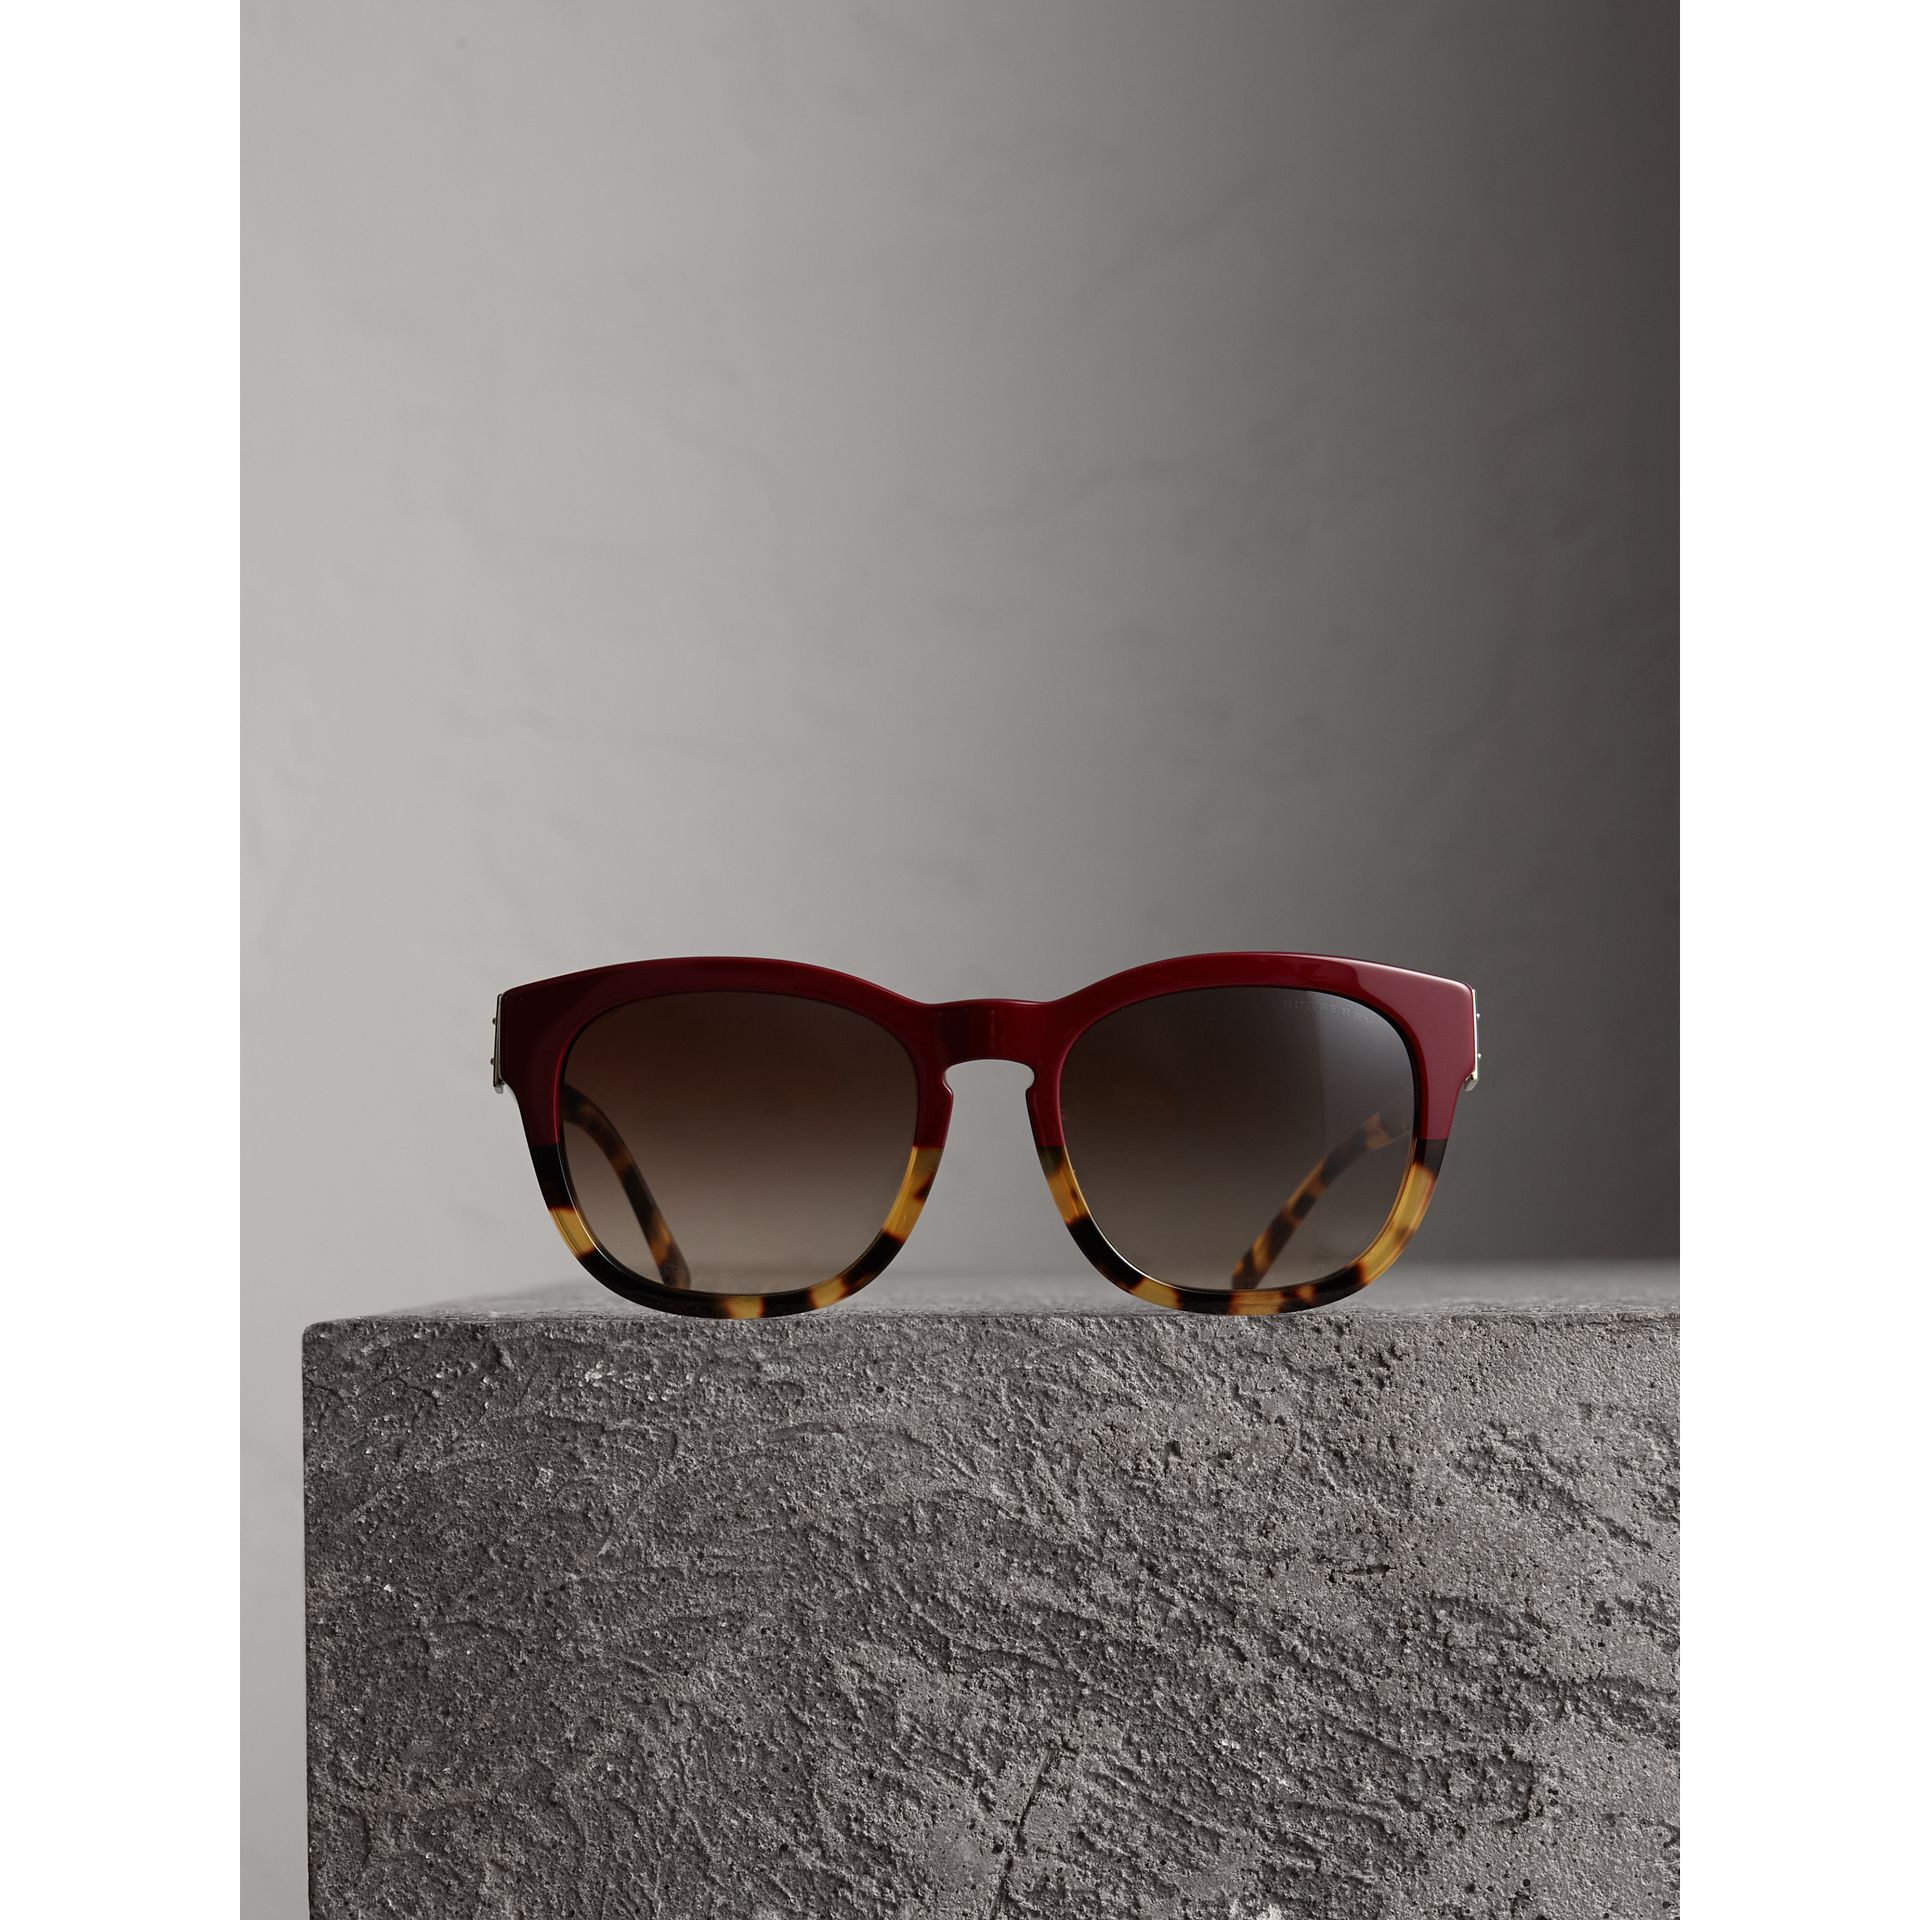 Buckle Detail Square Frame Sunglasses in Burgundy - Women | Burberry Hong Kong - gallery image 3